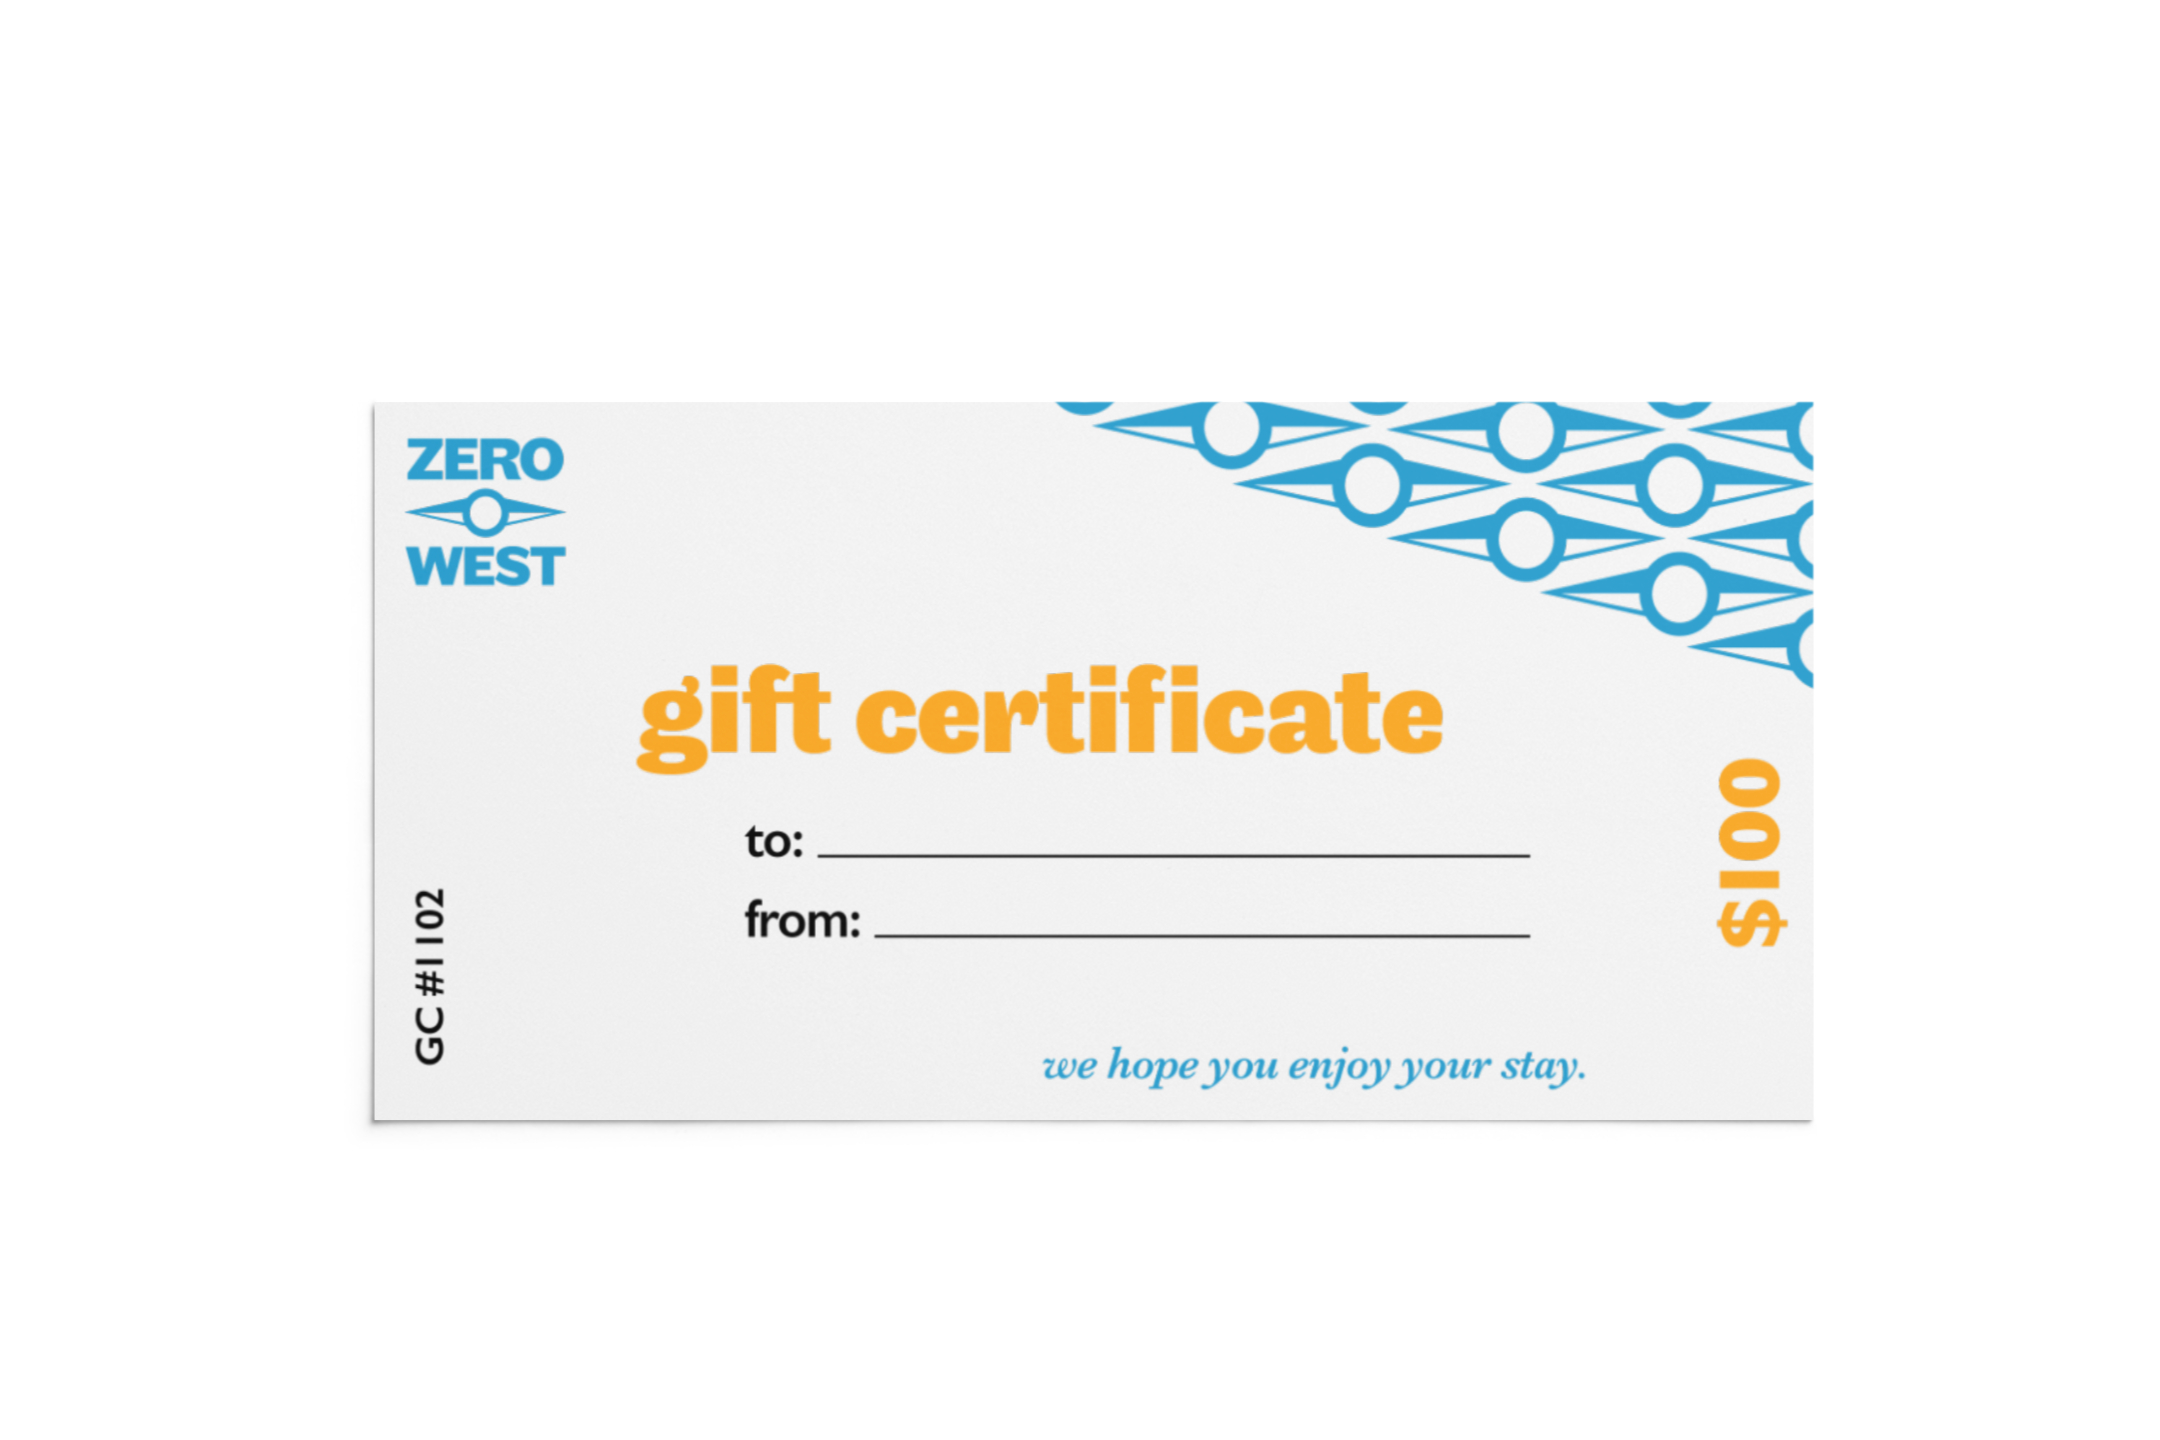 ZeroWest_GiftCertificate.jpeg